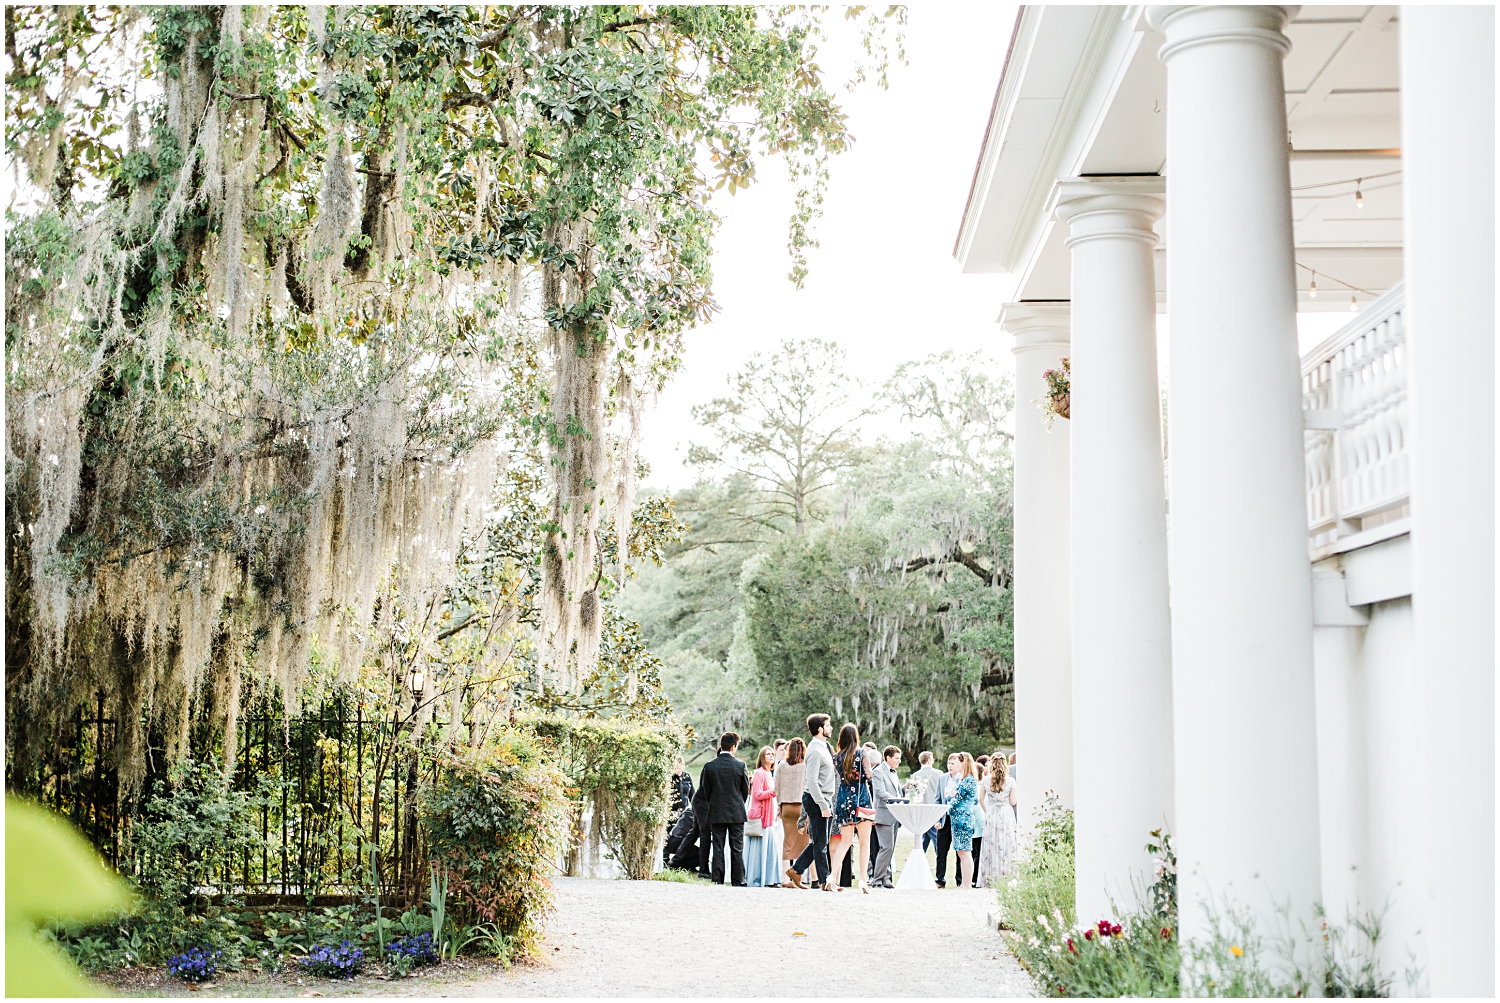 Magnolia Gardens Wedding, Charleston, SC_Erin L. Taylor Photography_0069.jpg